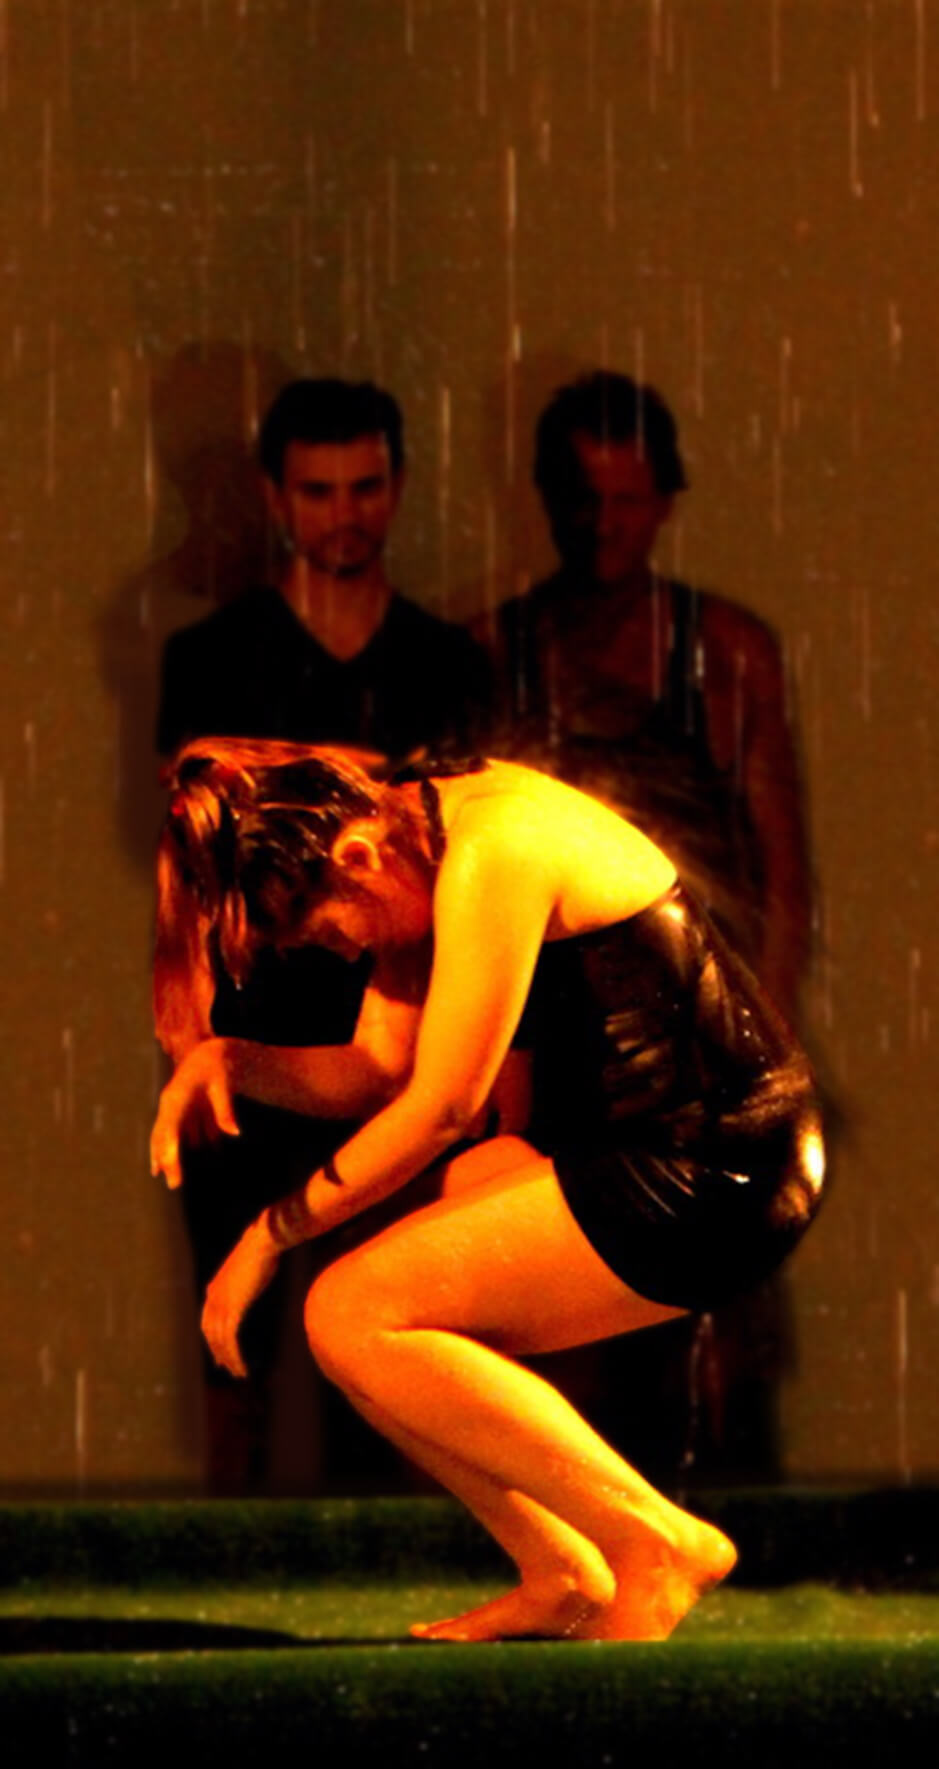 Actress, Ximena Calderón in a black dress crouching as stage rain fall on hers 2 men in back look at her.